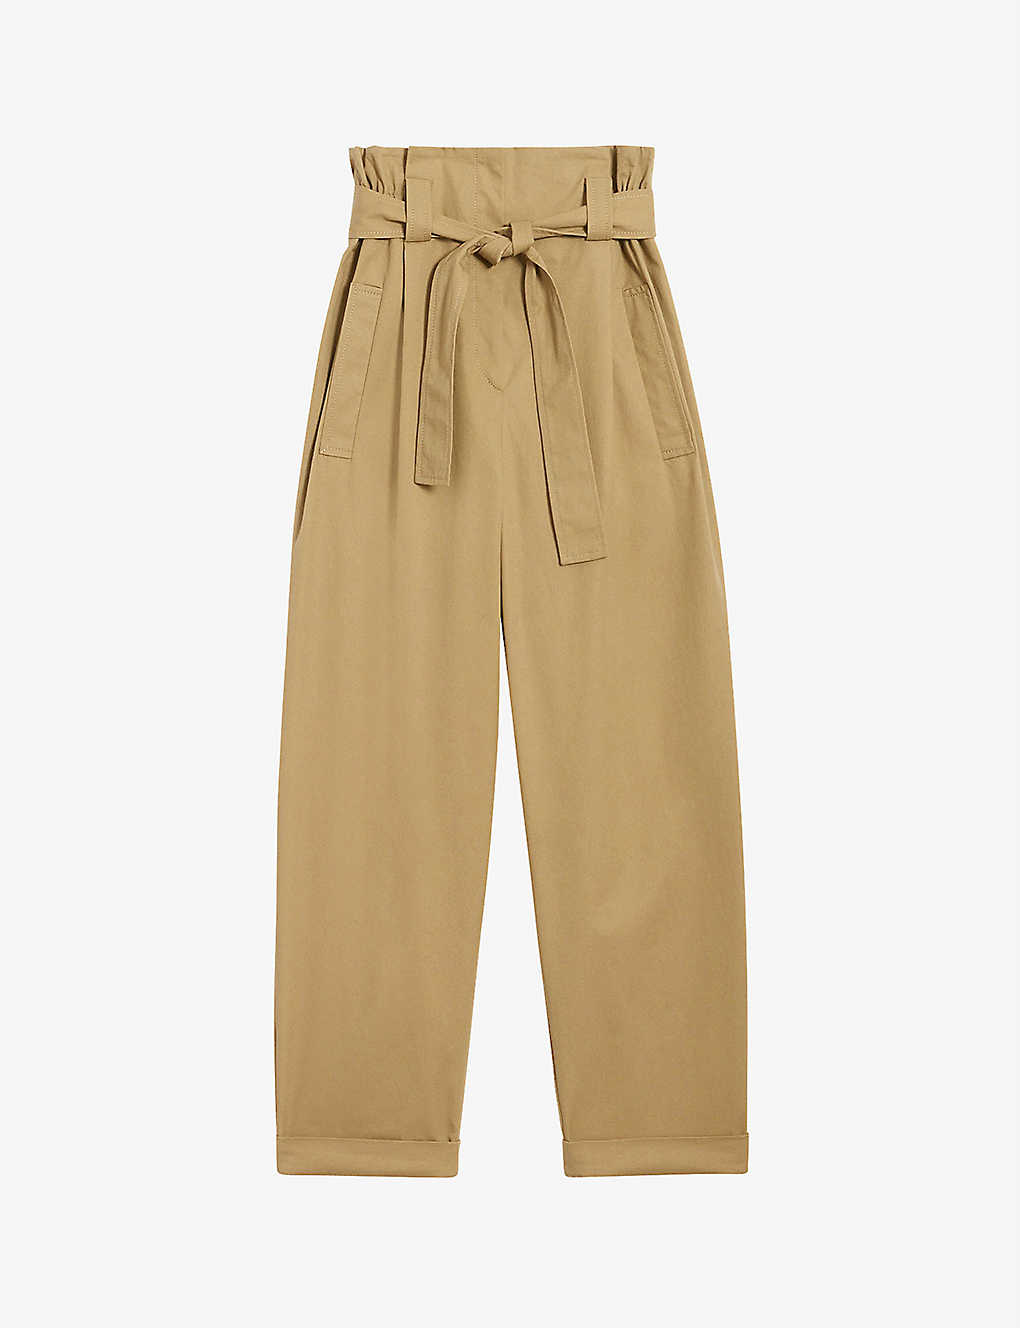 Orso belted tapered high-rise cotton trousers